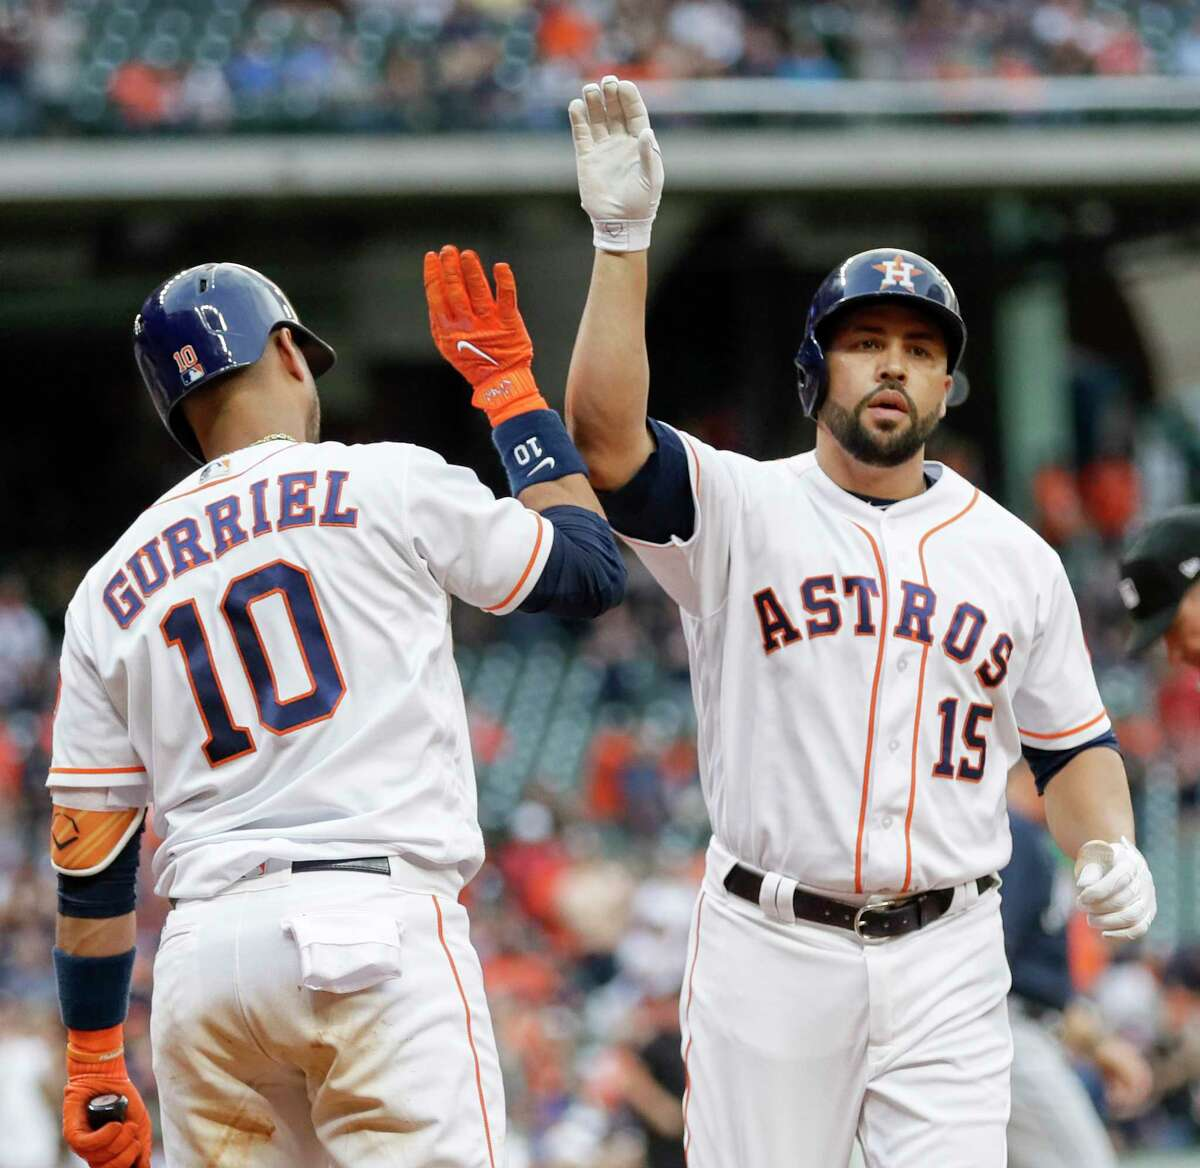 Houston Astros' Carlos Beltran (15) is congratulated by Yuli Gurriel (10) after hitting a home run against the Atlanta Braves during the first inning of a baseball game, Tuesday, May 9, 2017, in Houston. (AP Photo/David J. Phillip)